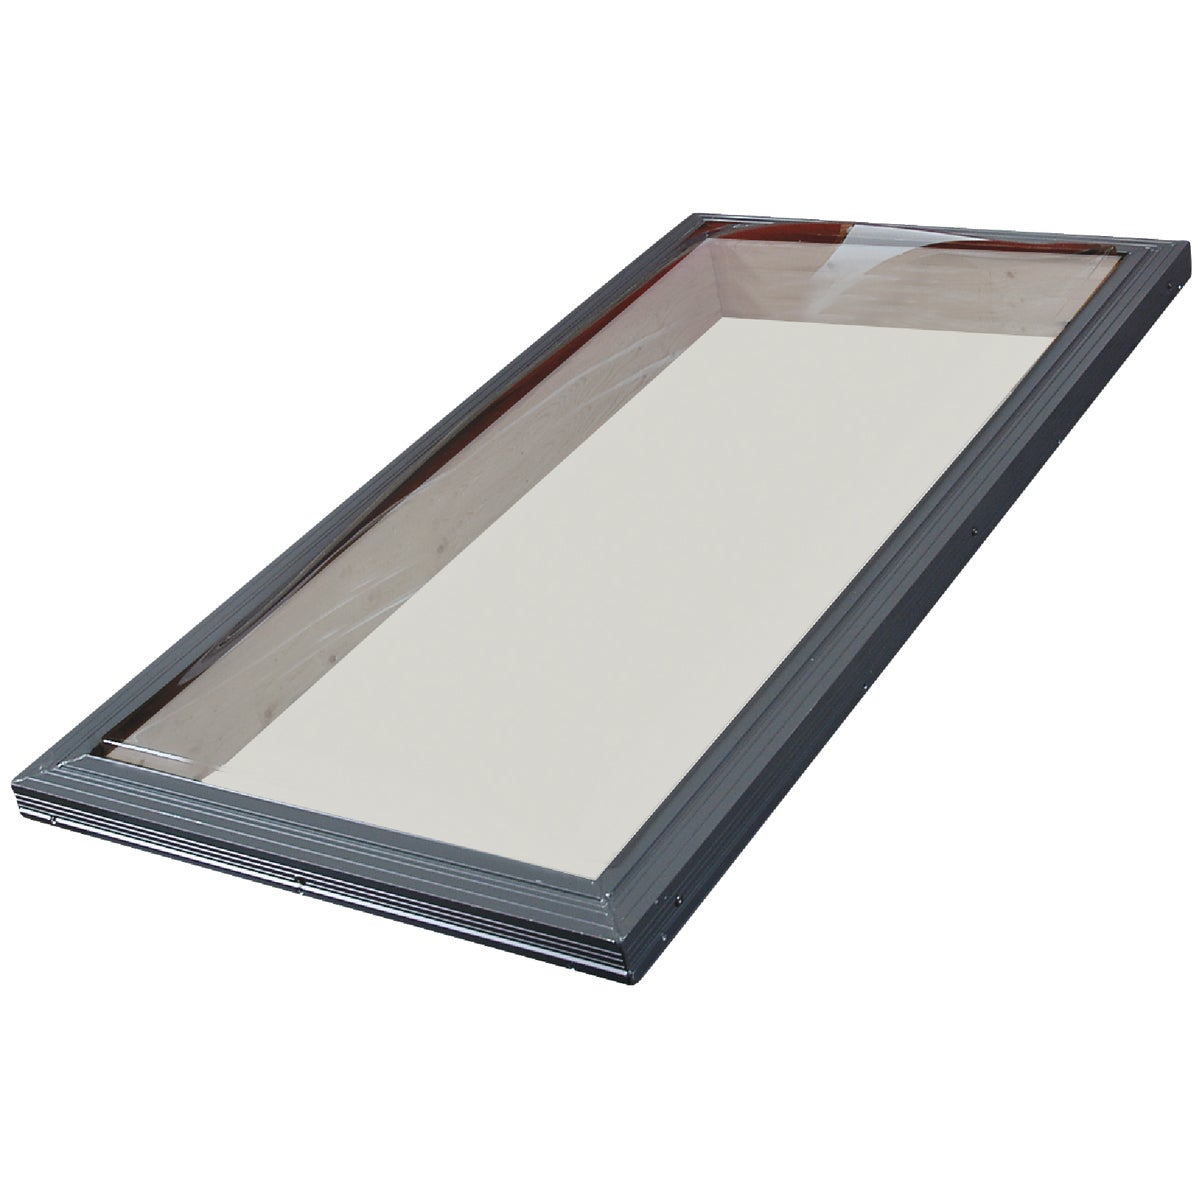 2X4 BRZ TRIPLE SKYLIGHT - CMA2246BCCB by Sun Tek Manuf Inc